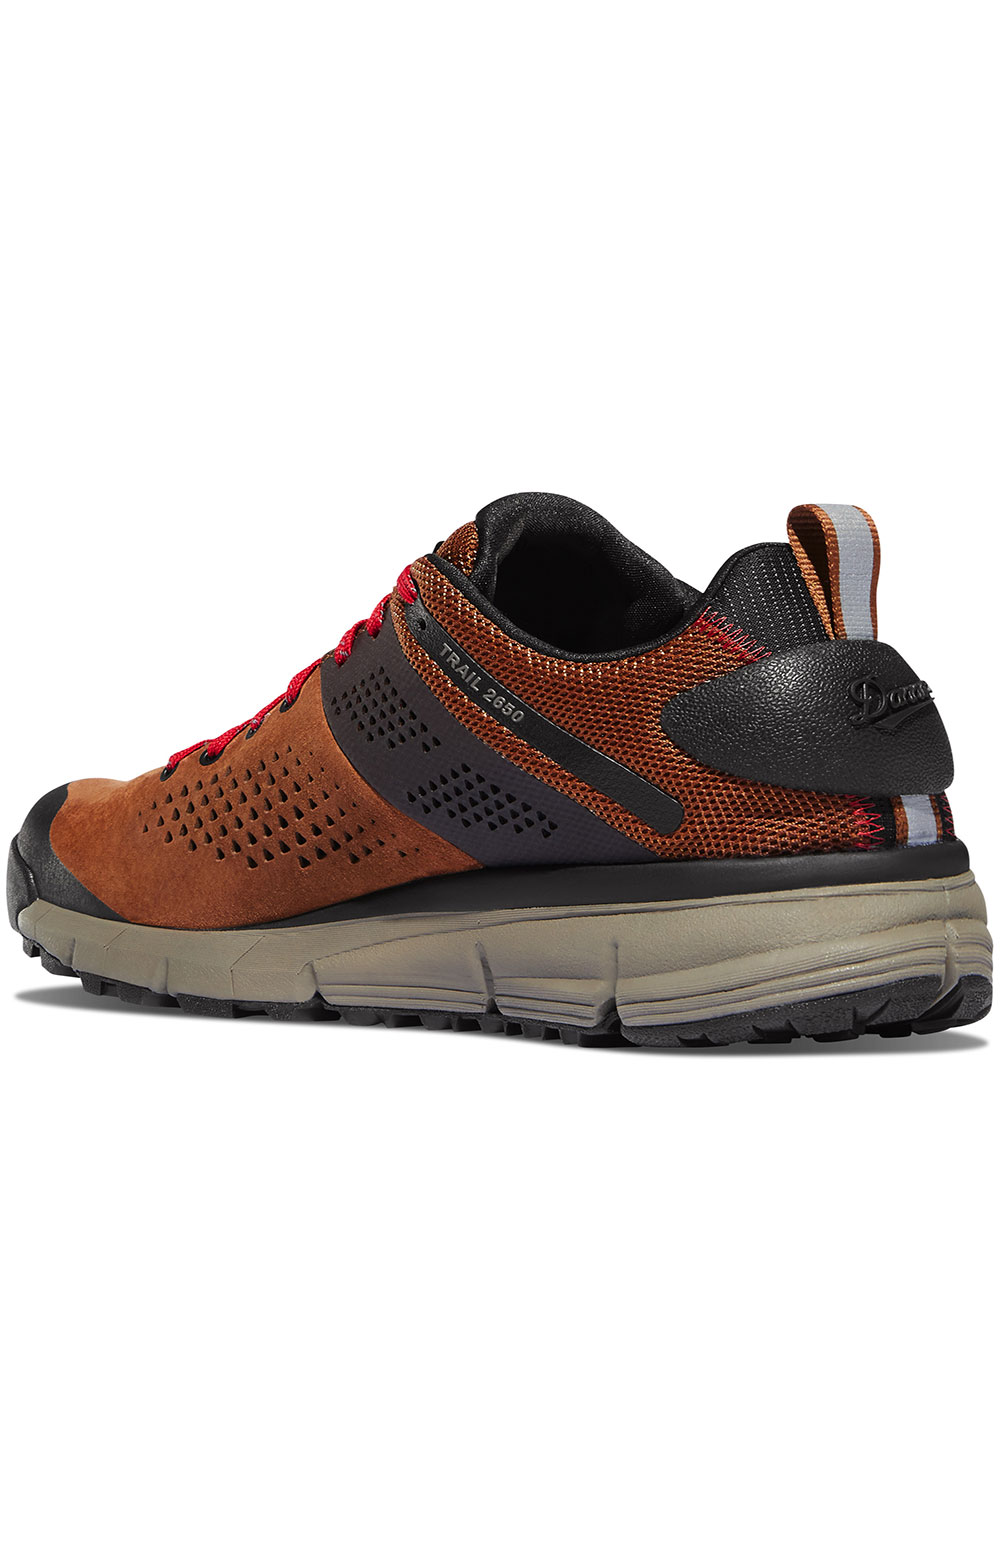 (61272) Trail 2650 Shoes - Brown/Red 2